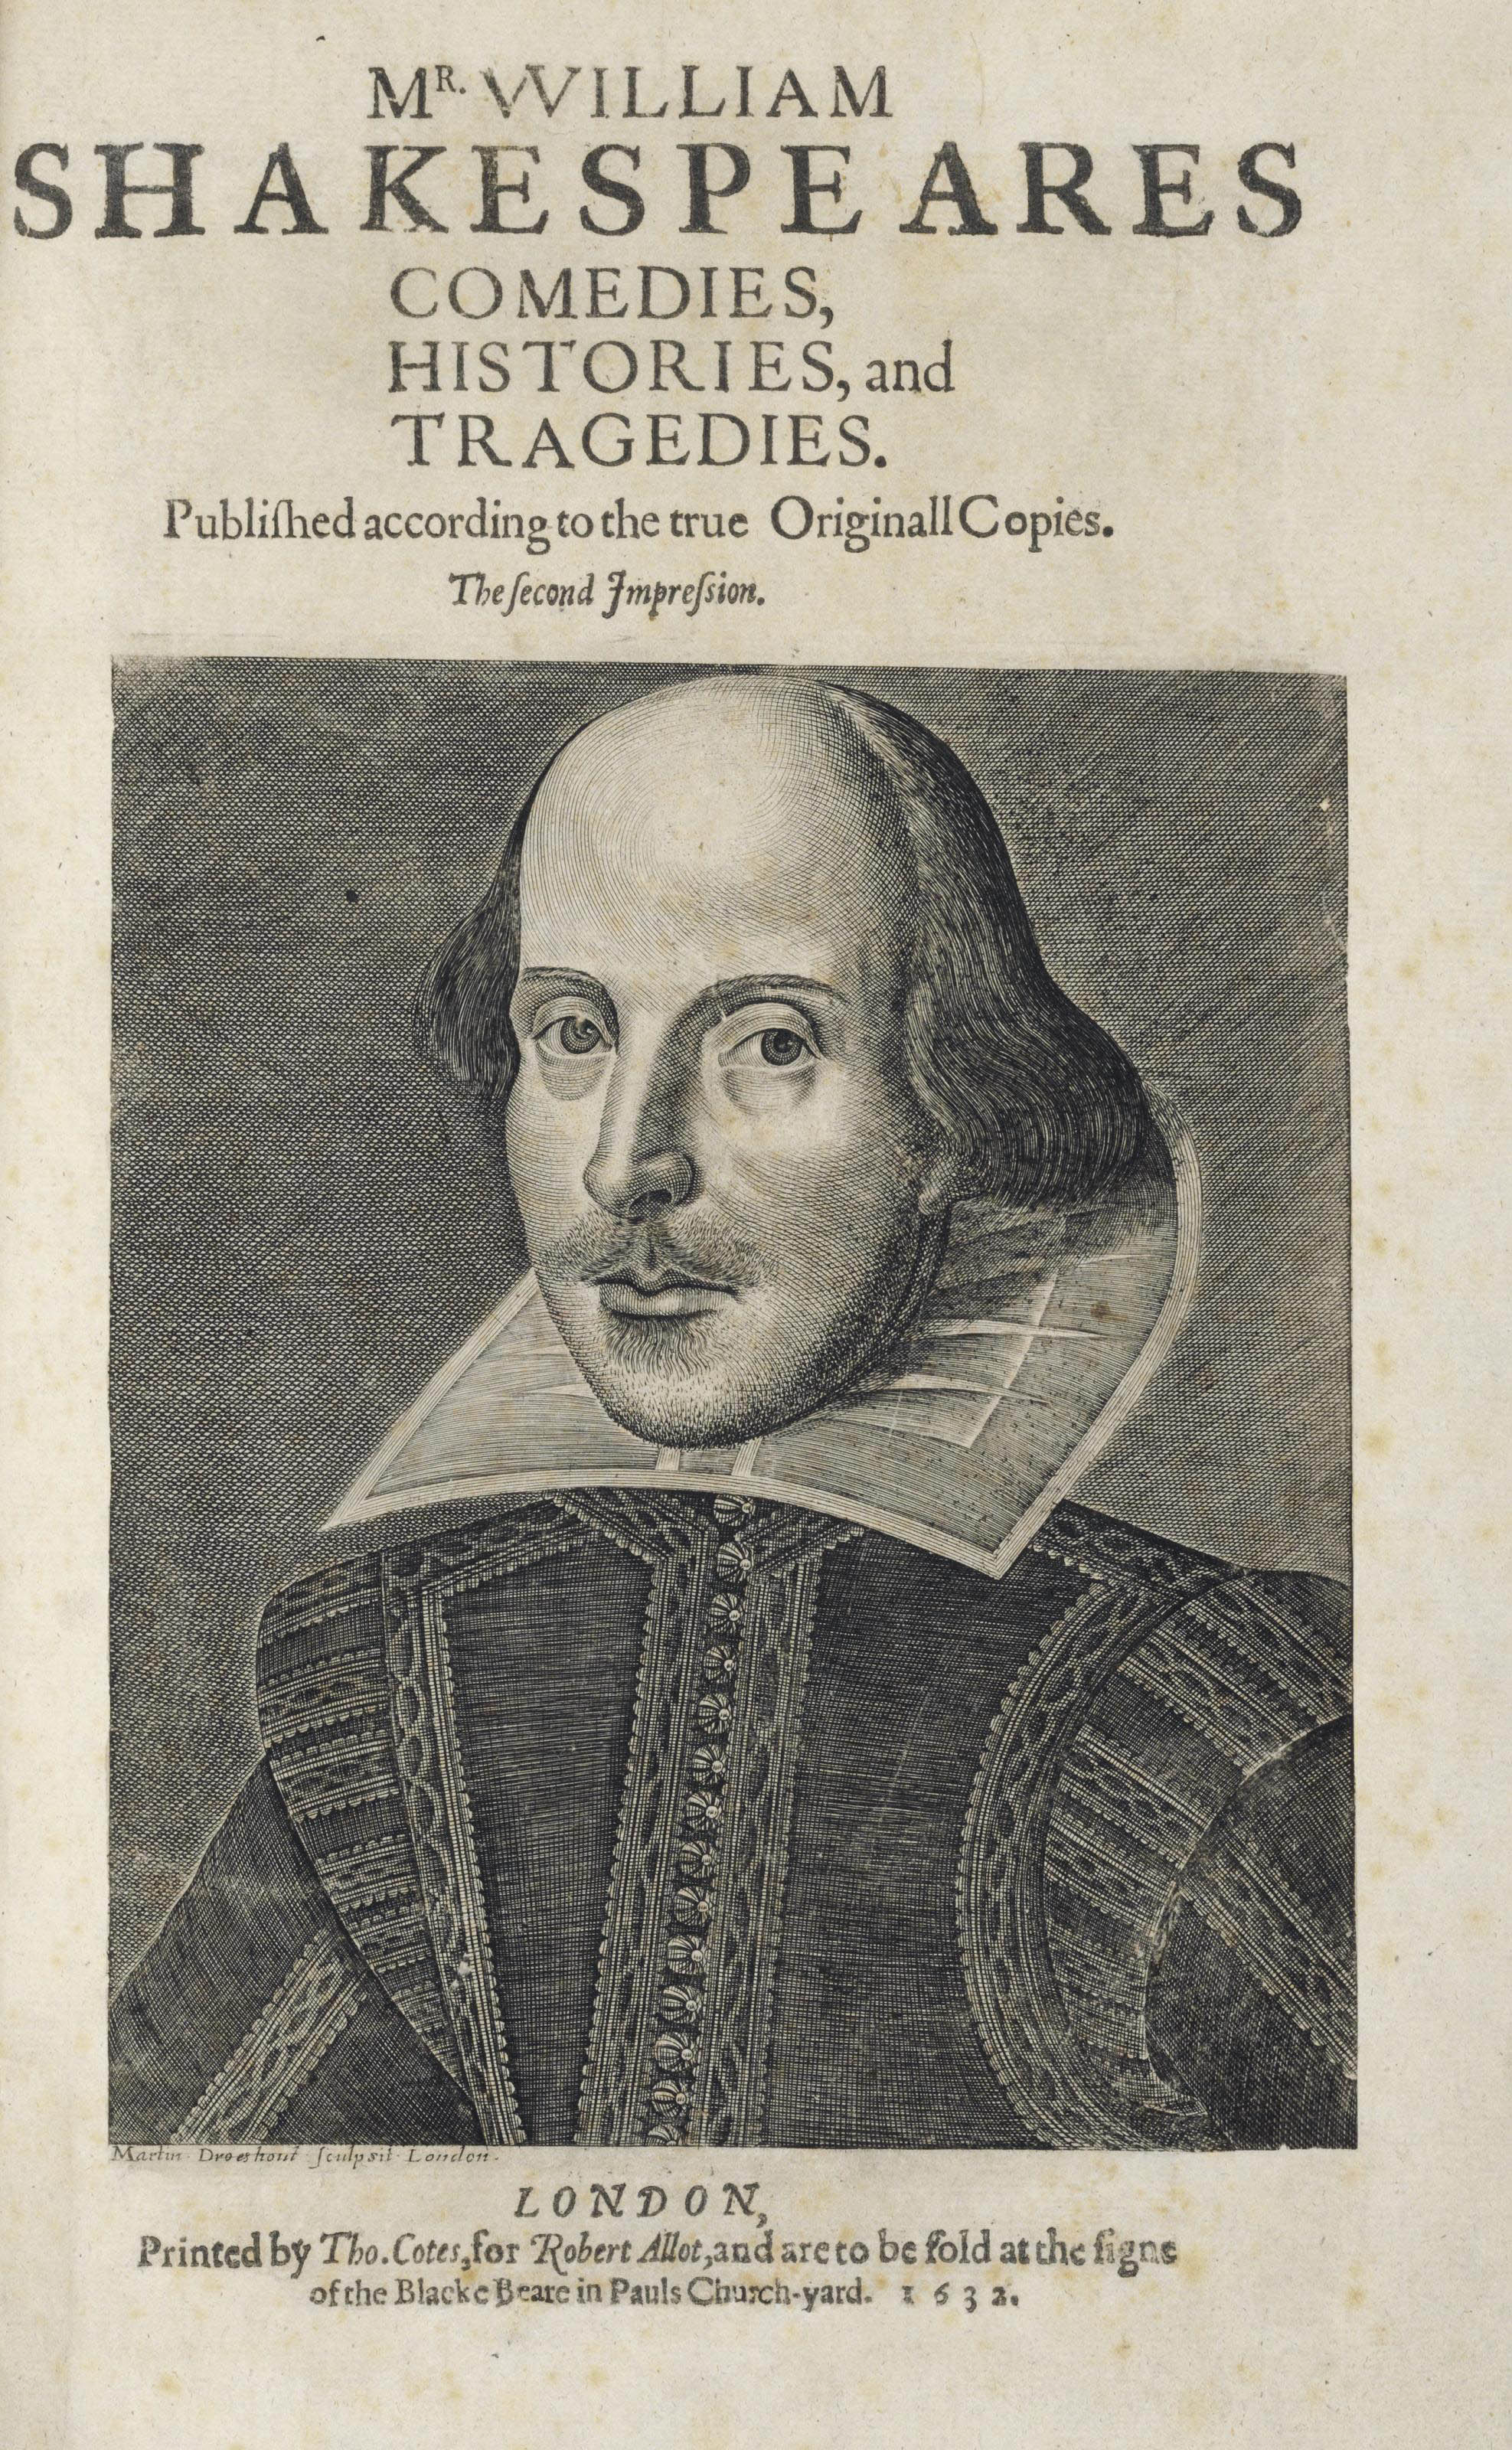 SHAKESPEARE, William (1564-1616). Comedies, Histories and Tragedies. Published according to the true Originall Copies. The second Impression. Edited by John Heminge (d. 1630) and Henry Condell (d. 1627). London: Printed by Tho. Cotes, for Robert Allot, and are to be sold at the signe of the Blacke Beare in Pauls Church-yard, 1632.